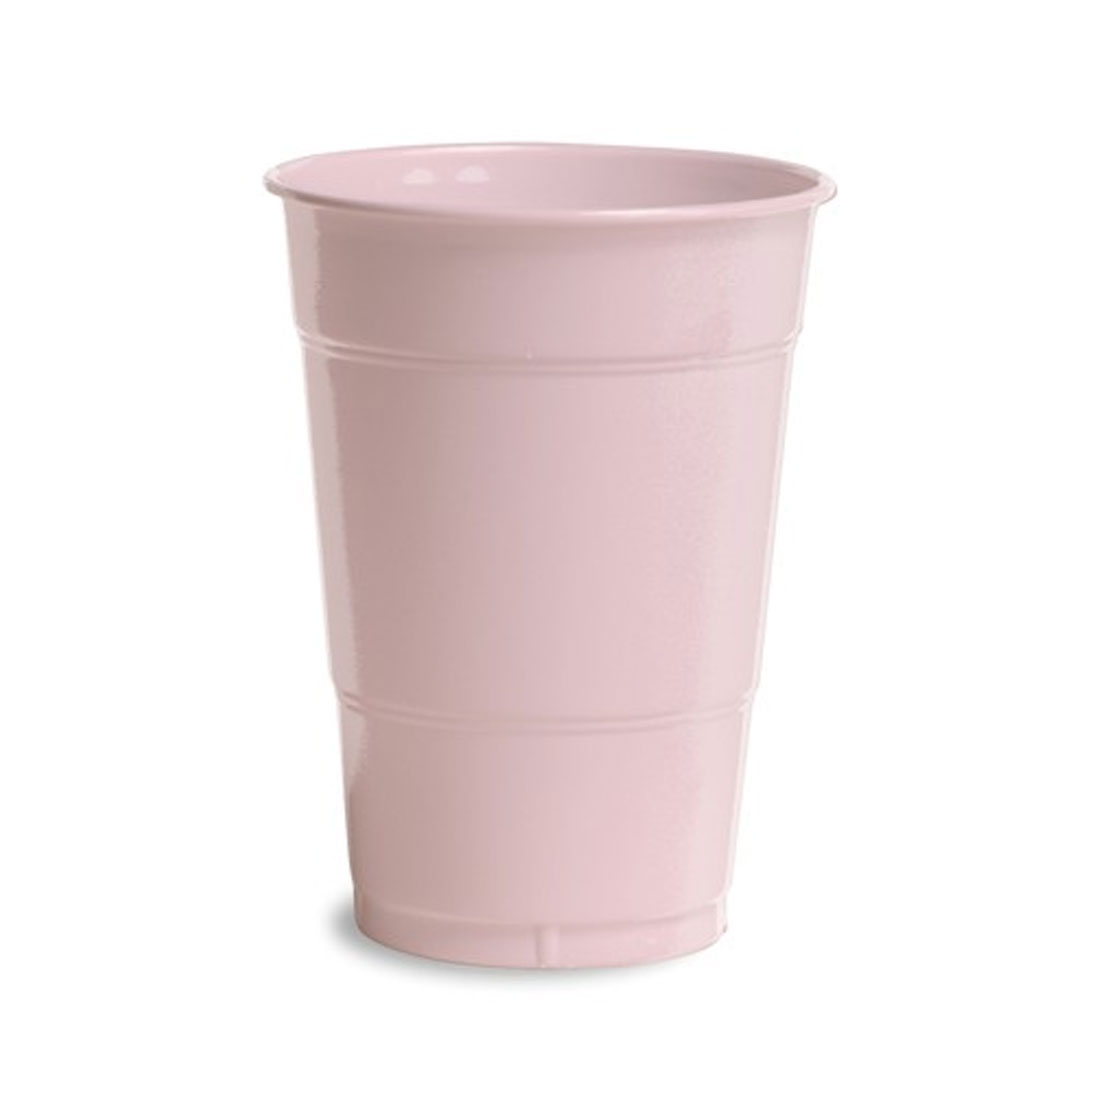 16 oz Solid Plastic Cups Classic Pink/Case of 240